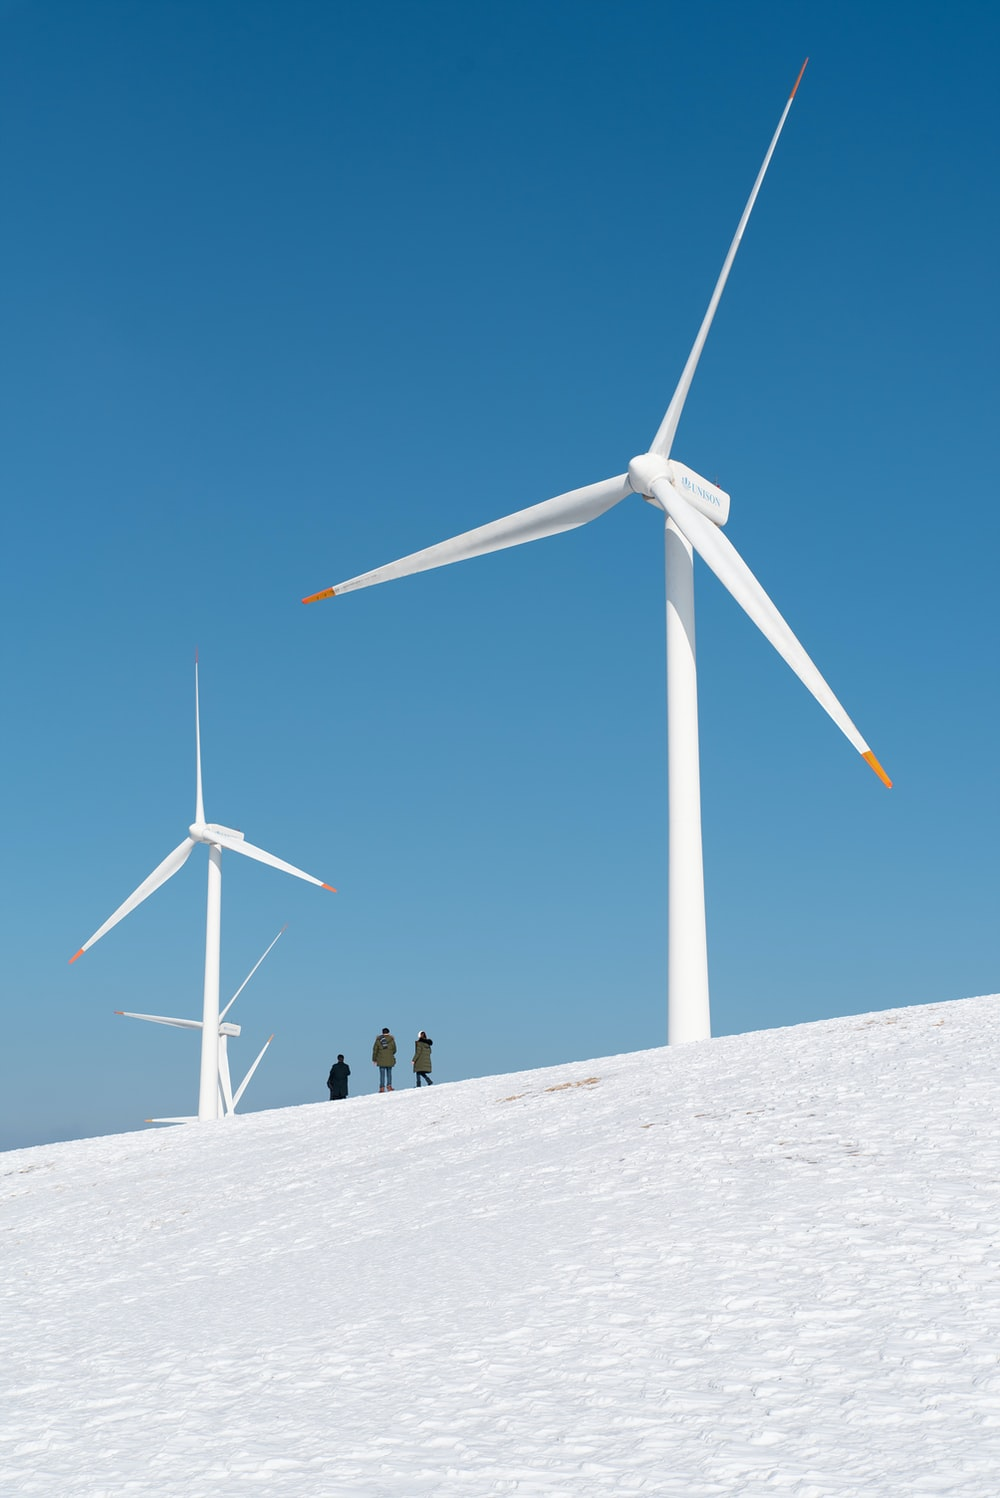 people standing near wind turbines during daytime